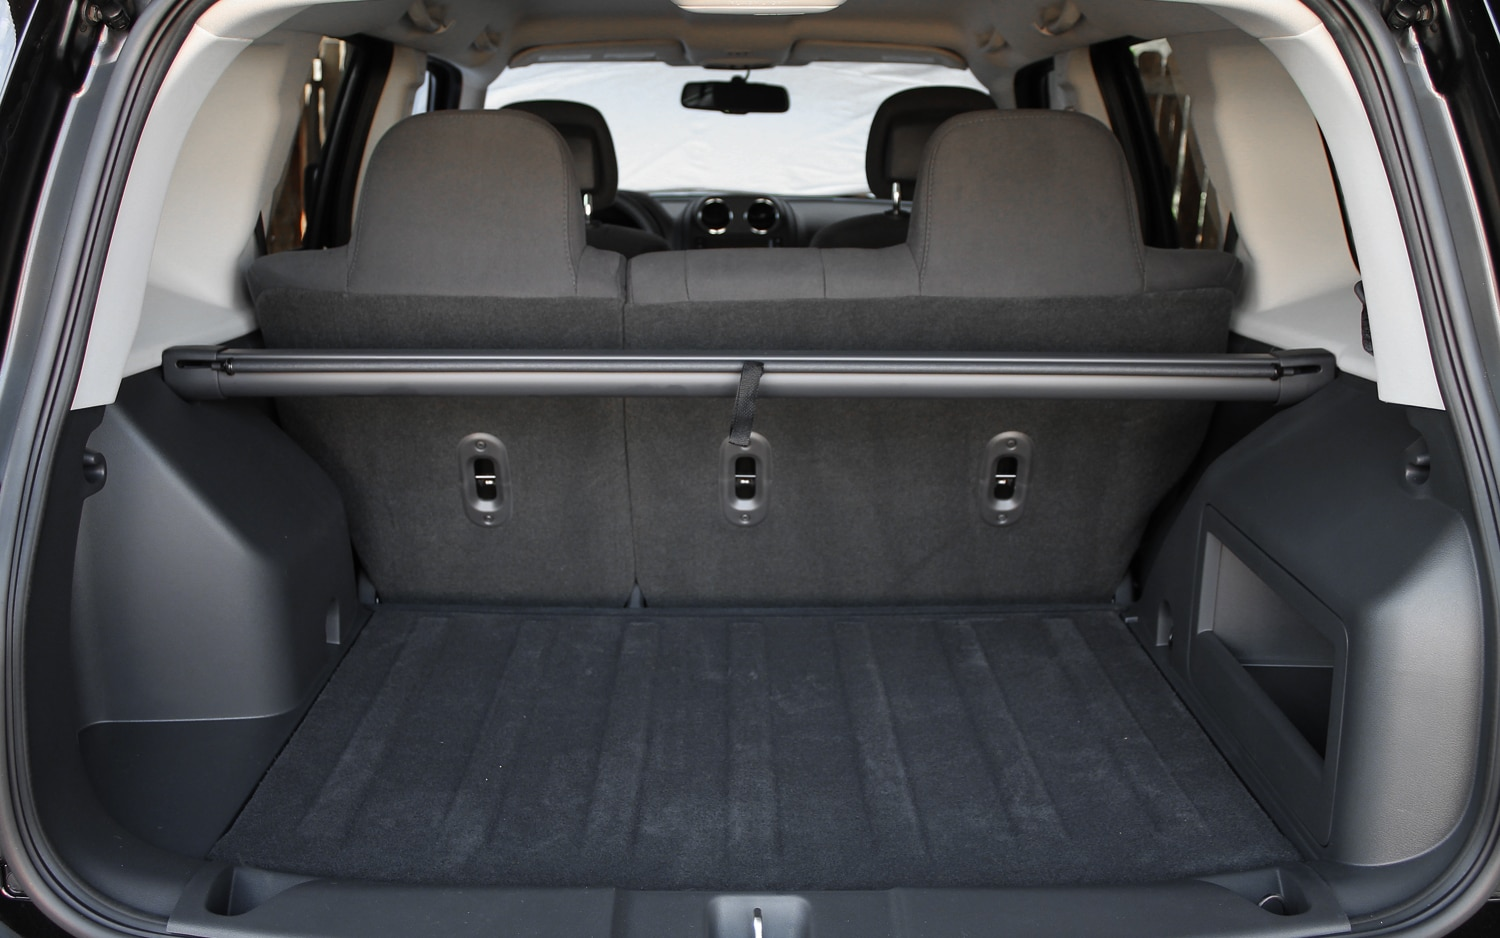 2013 Jeep Patriot Latitude 4X4 Rear Interior Cargo Space